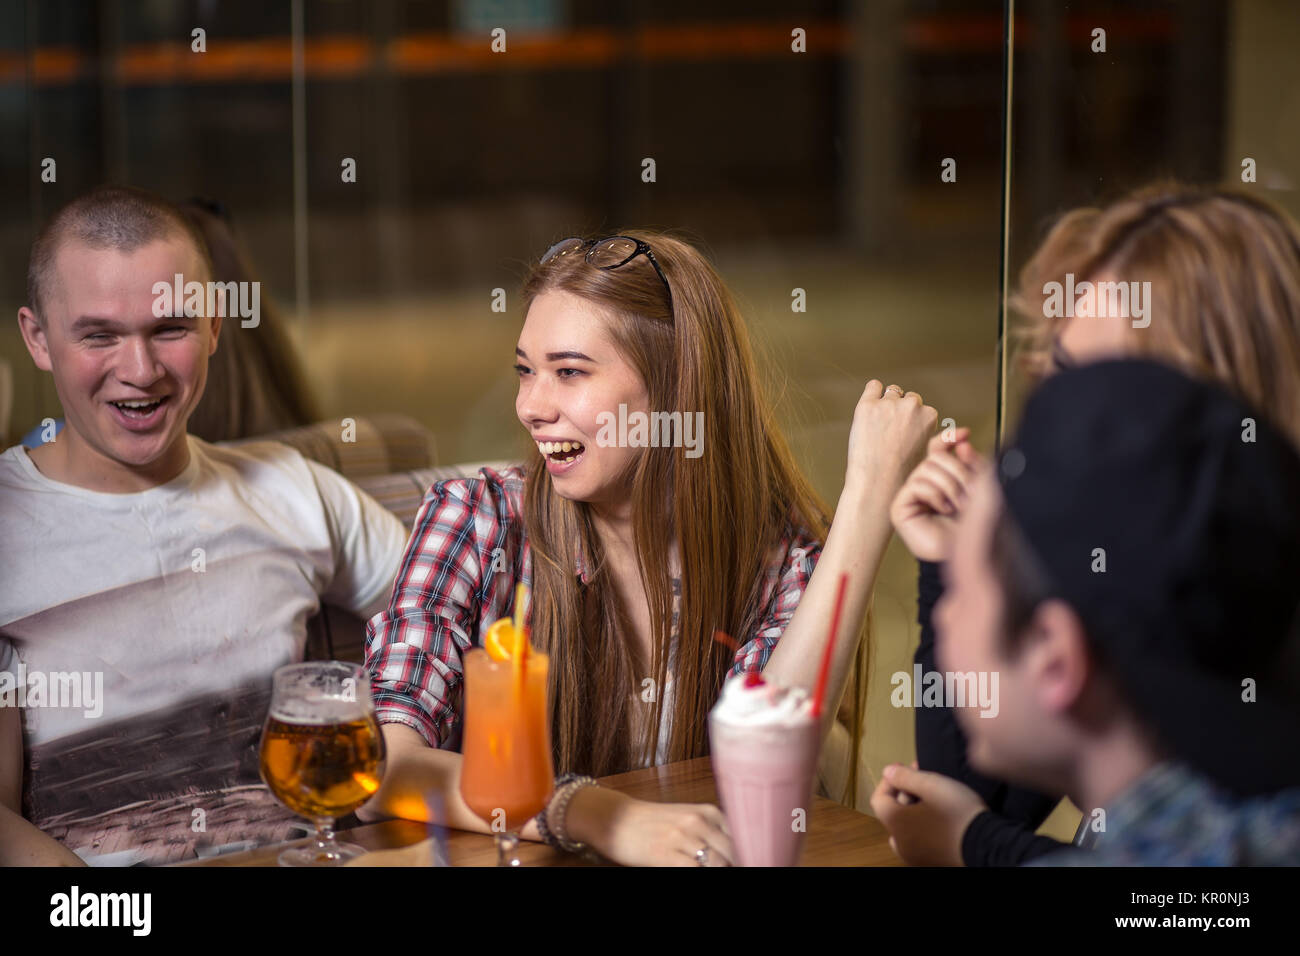 Diverse People Hang Out Pub Friendship - Stock Image